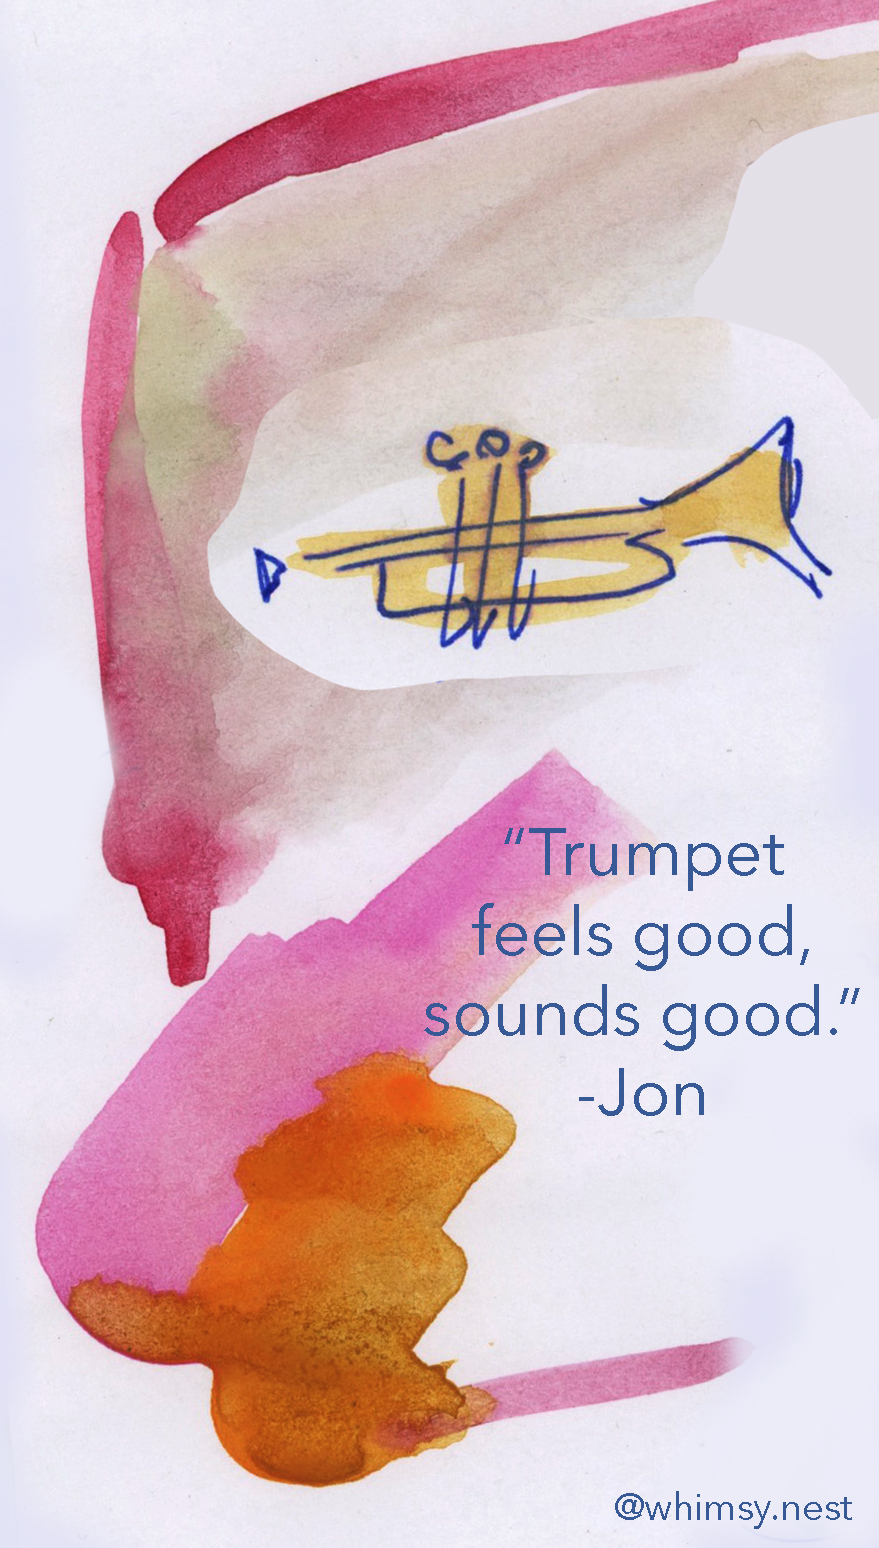 trumpet feels good lampley quote.jpg